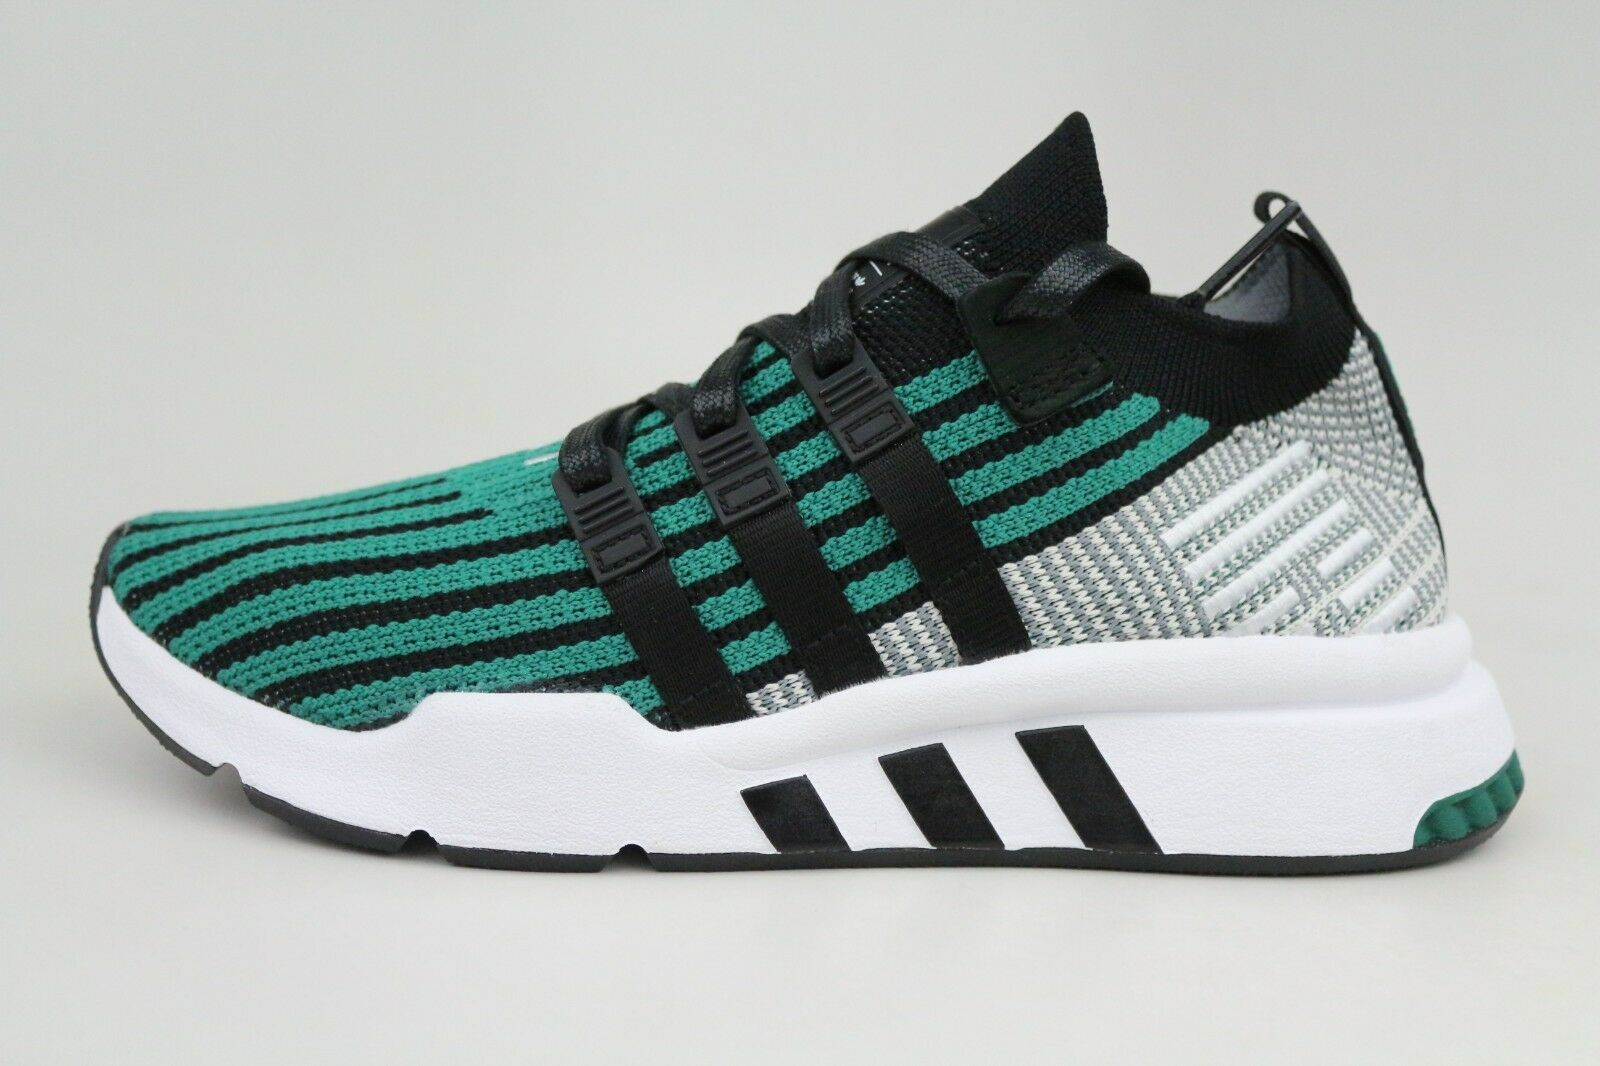 Adidas EQT Support Mid ADV PK Core Black Sub Green Mens Size Sneakers CQ2998 NIB